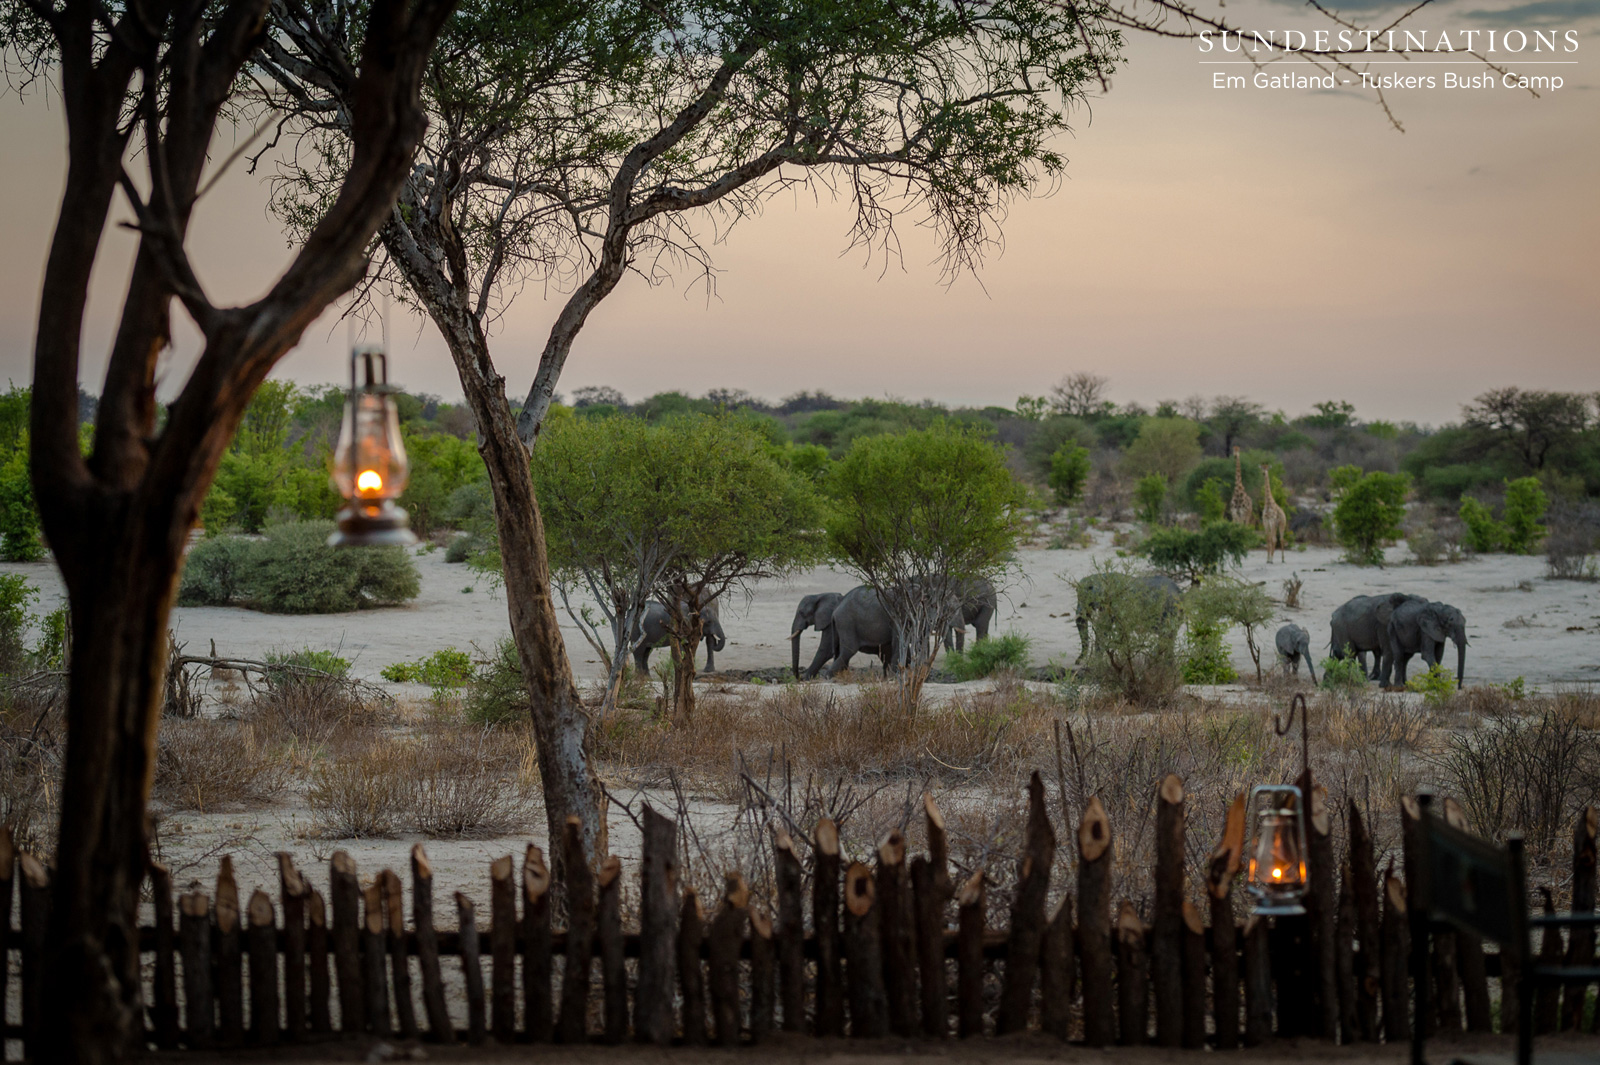 Tuskers Bush Camp Elephants